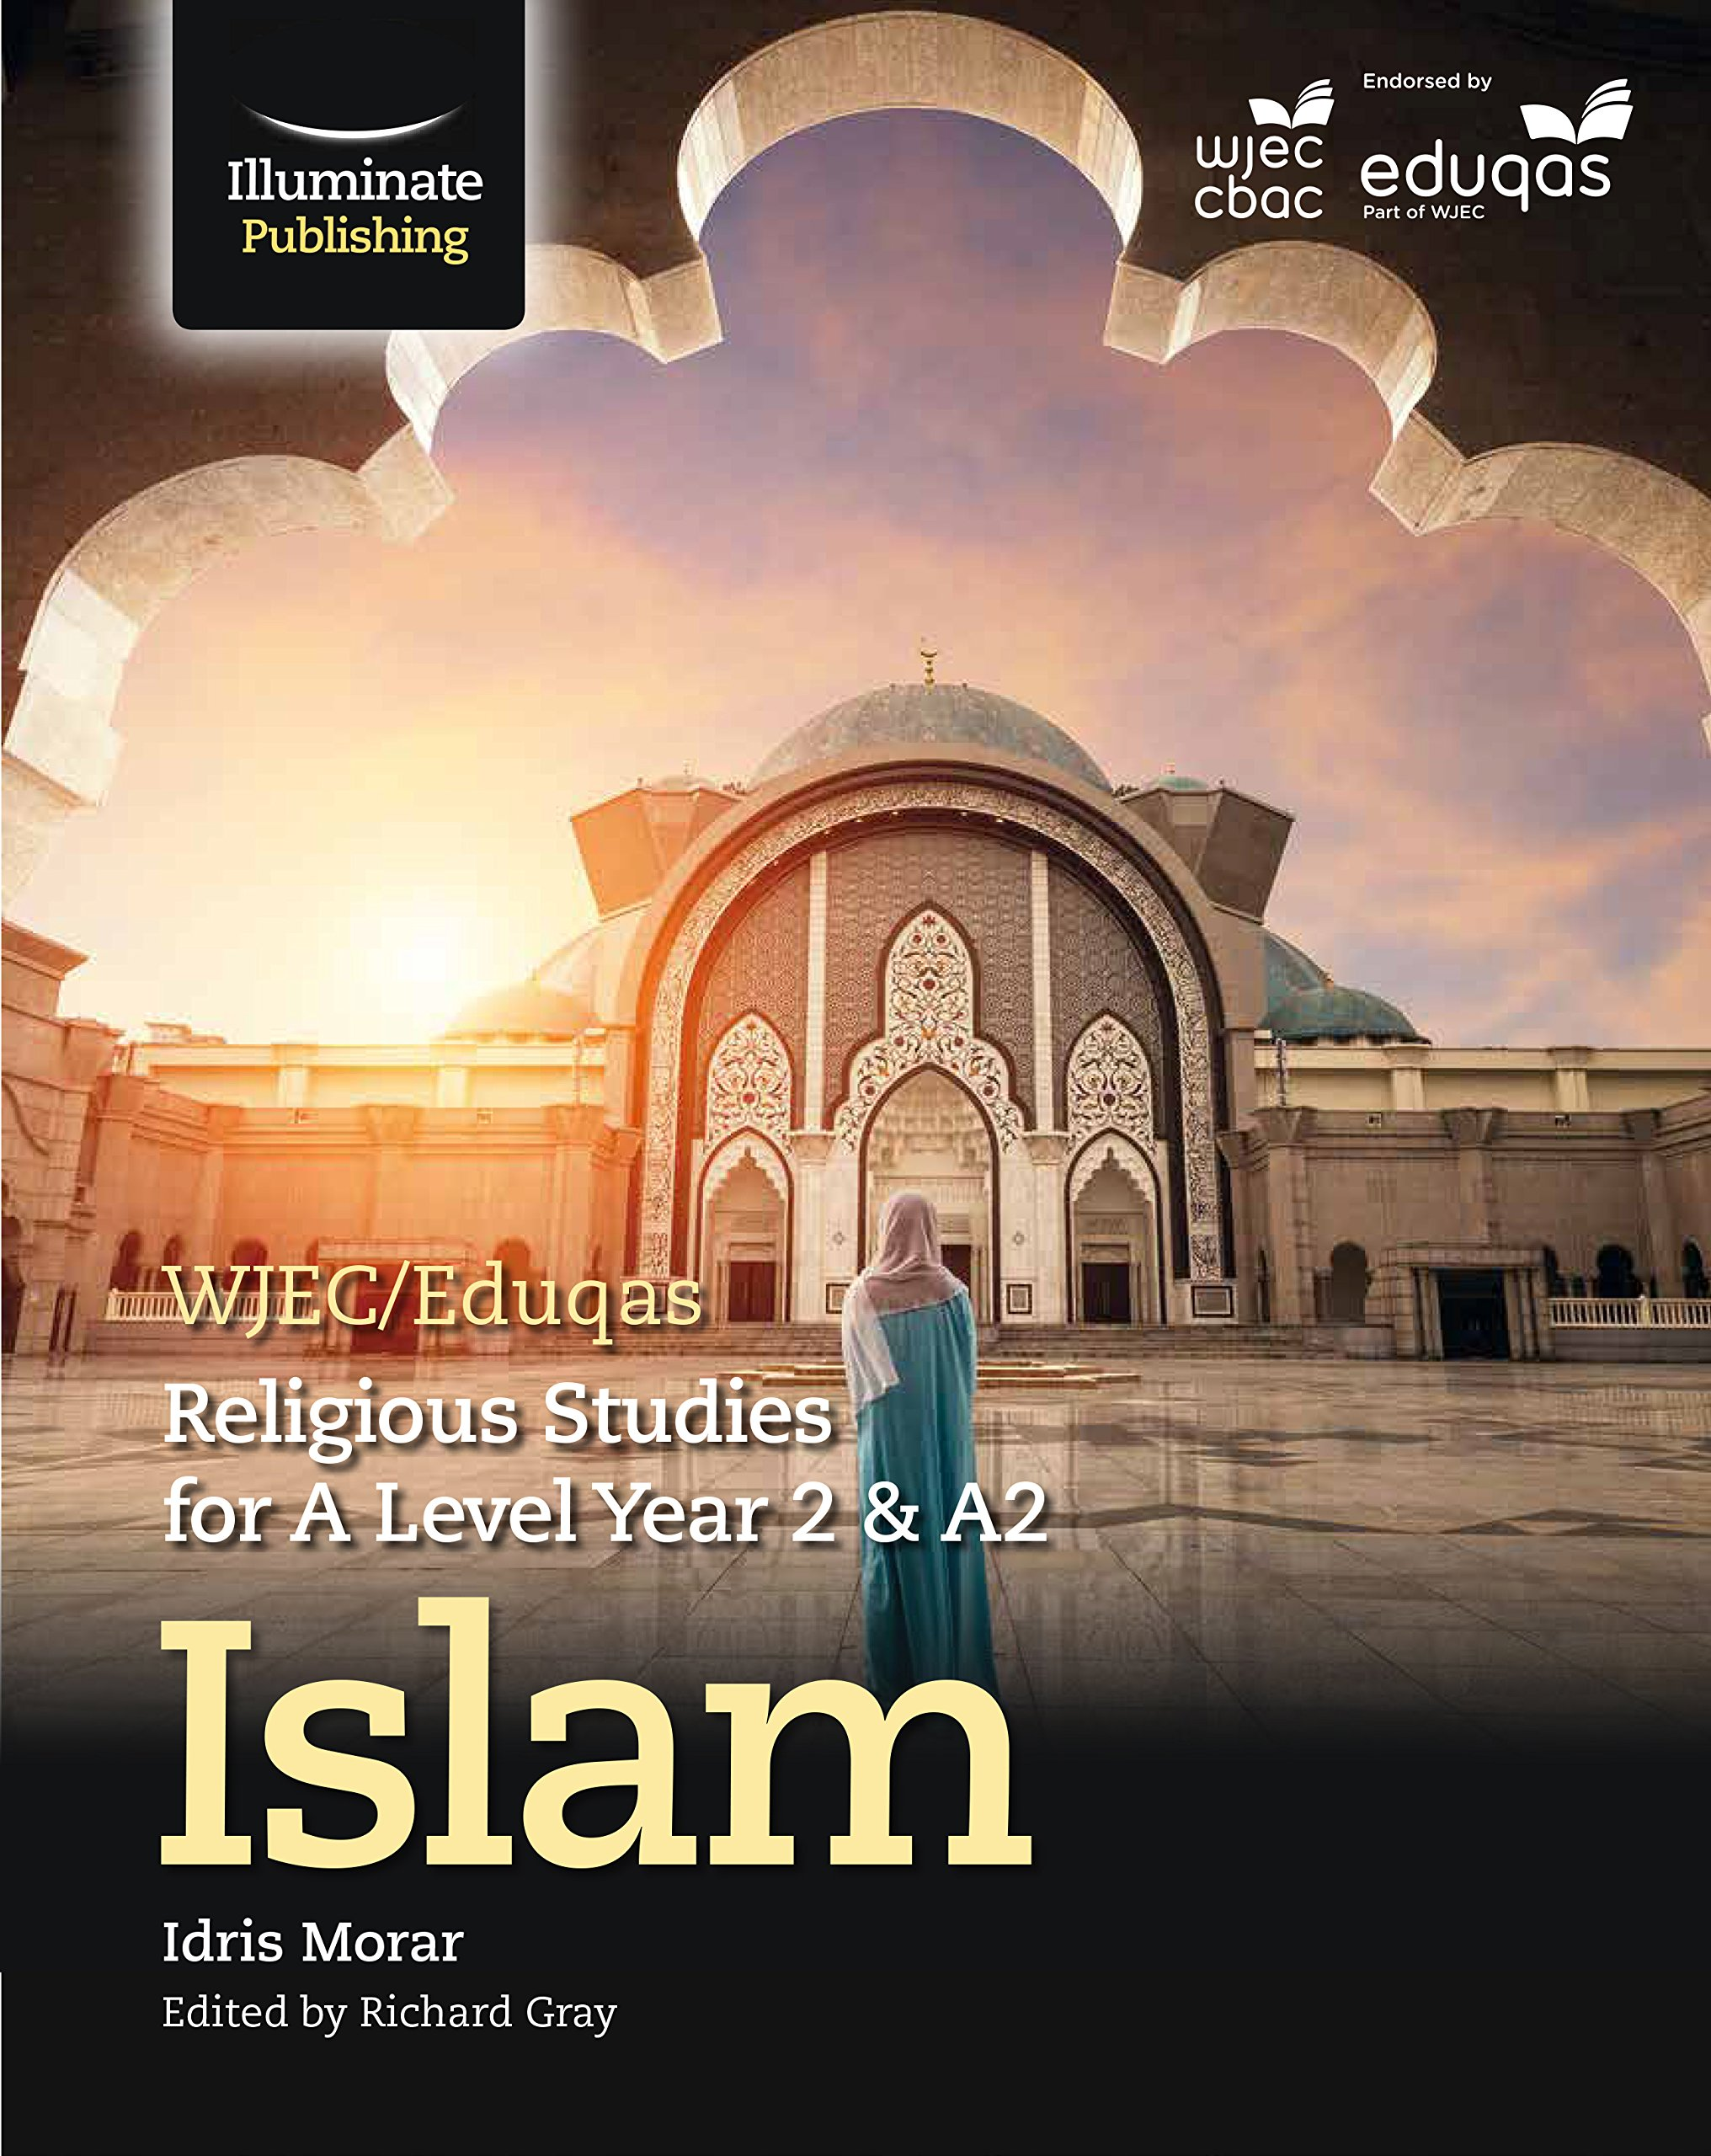 WJEC/Eduqas Religious Studies for A Level Year 2/A2: Islam ebook